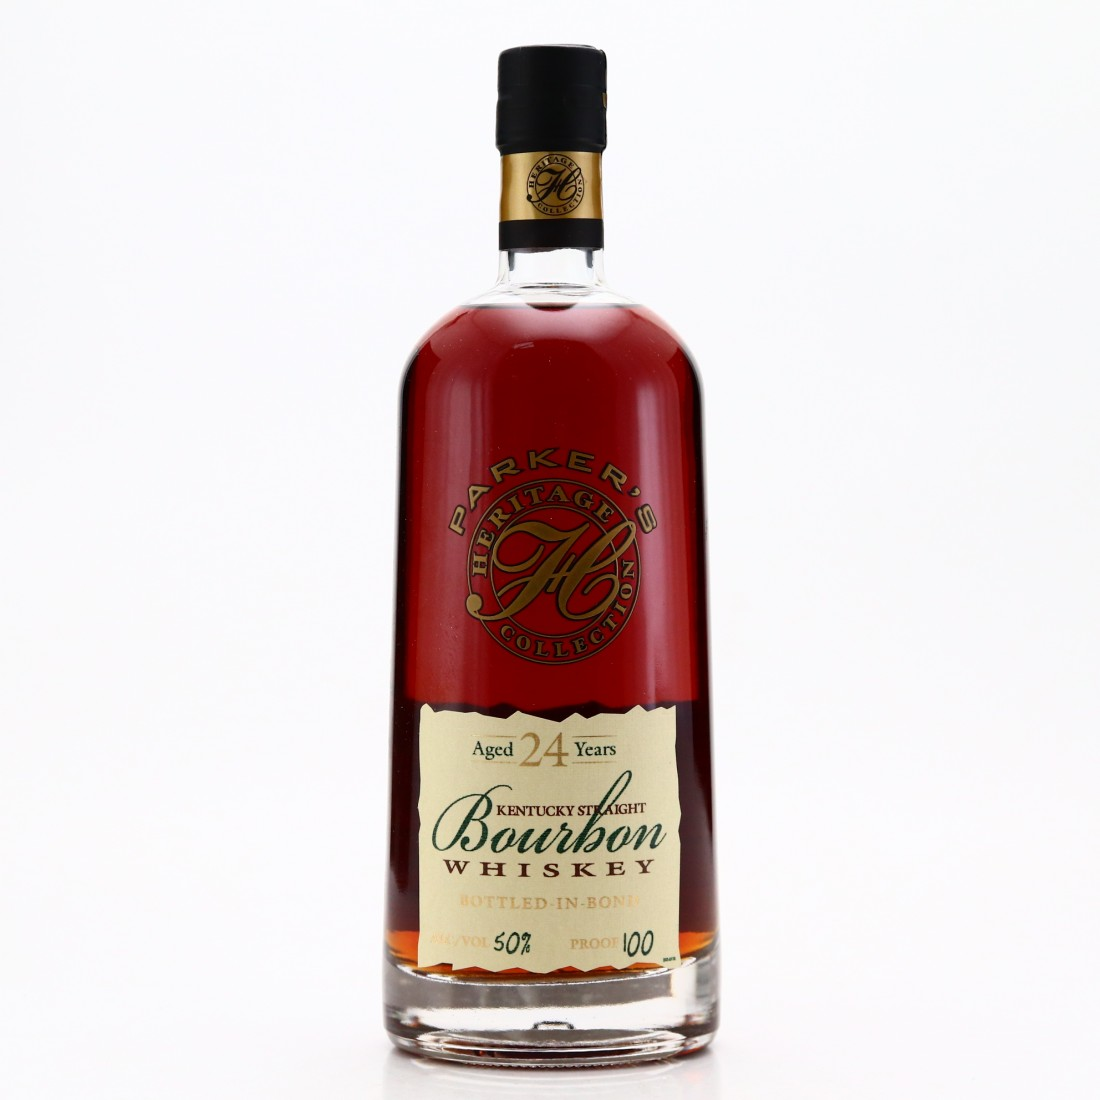 Parker's Heritage Collection 24 Year Old Bottled in Bond Bourbon